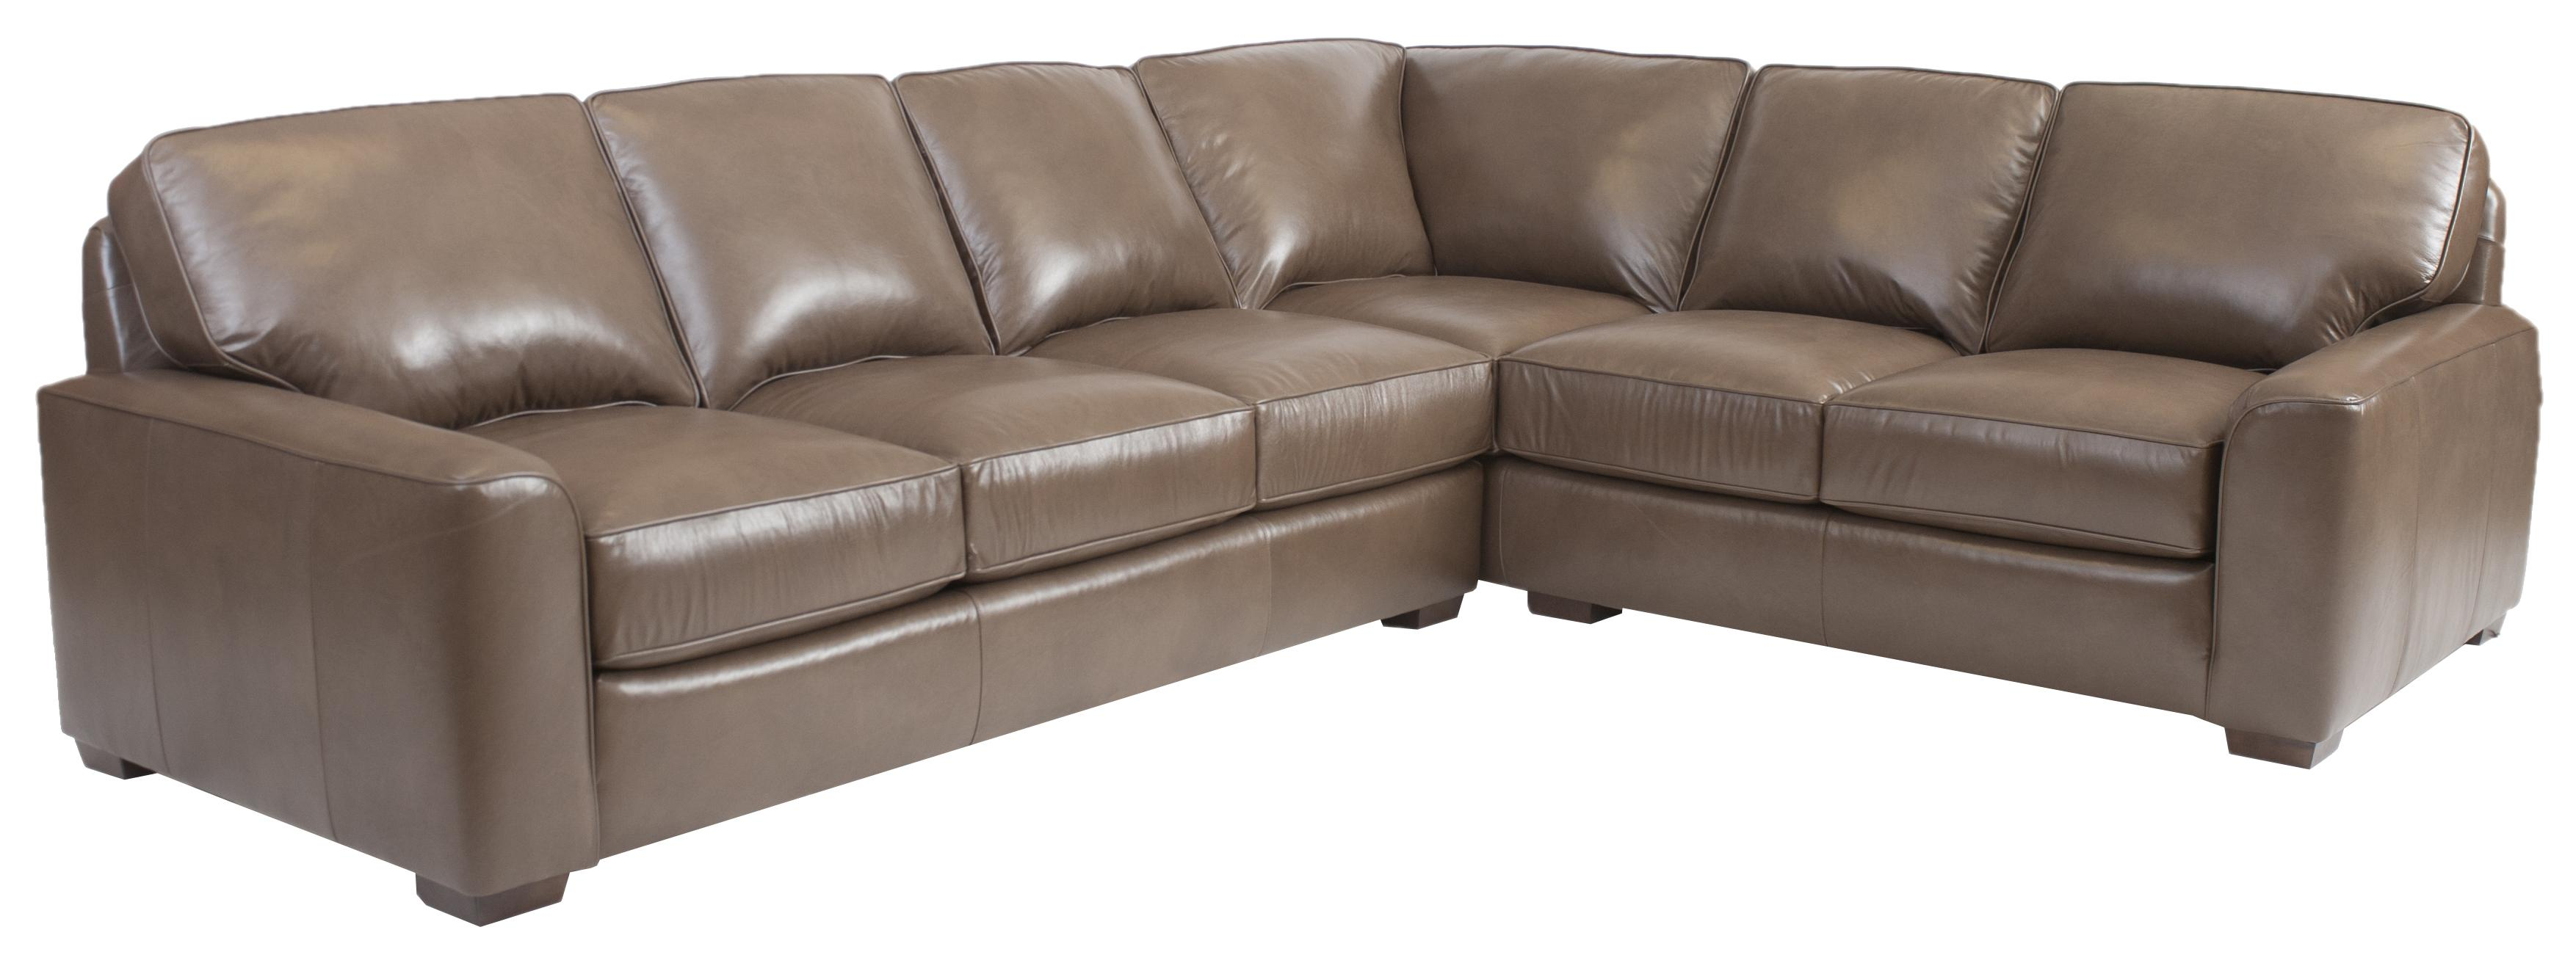 Build your own 8000 series large corner sectional sofa for Oversized sectionals